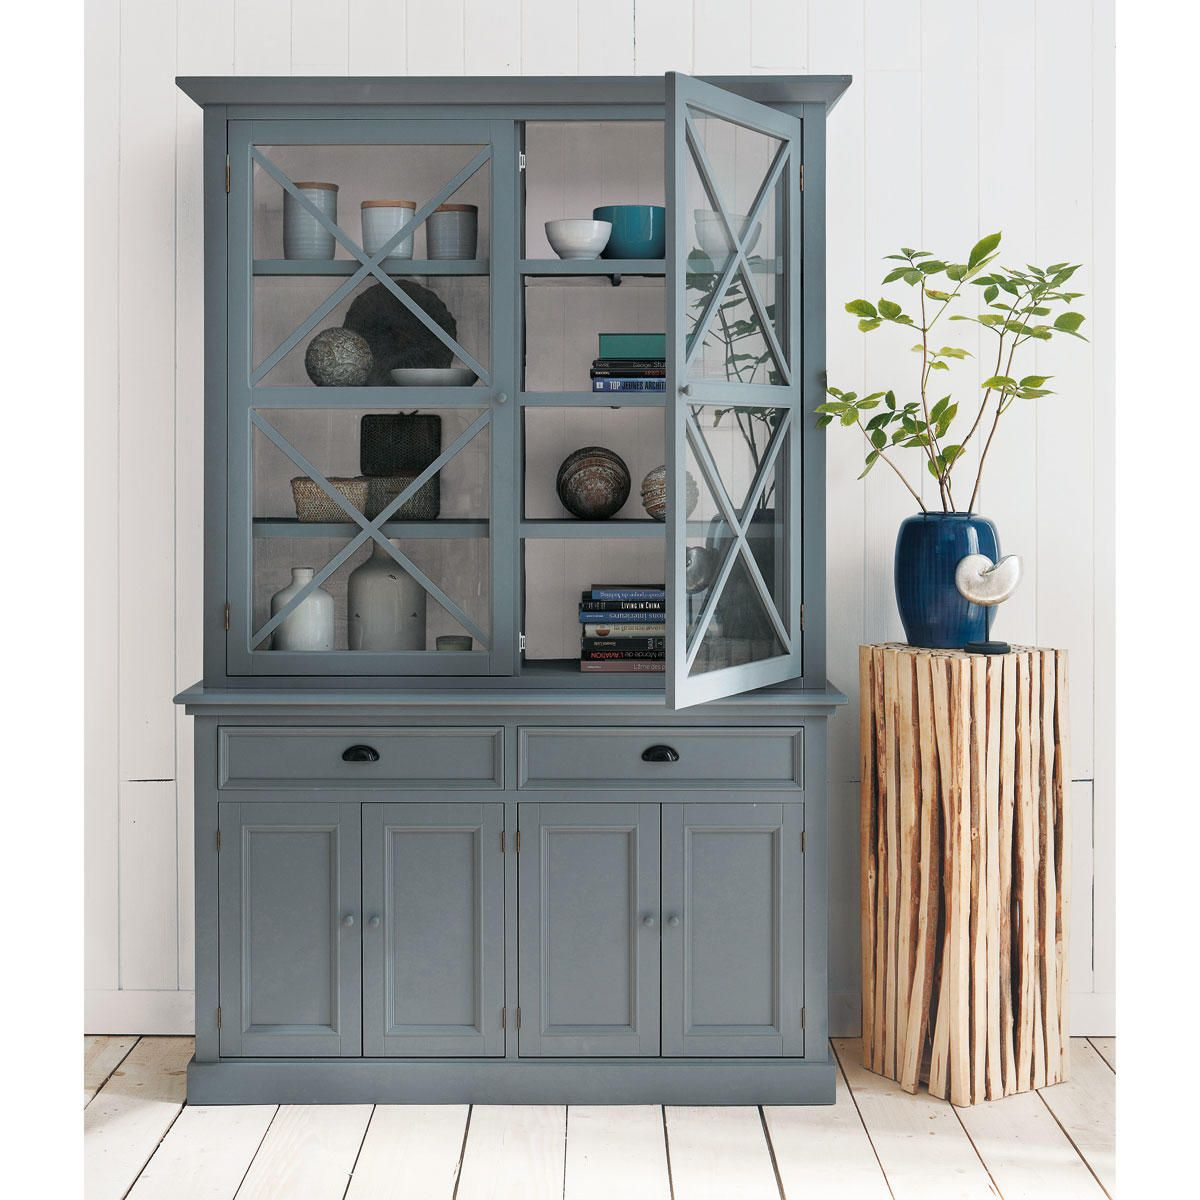 colonne d co bois rivage d coration int rieur pinterest bois gris gris et buffet de f te. Black Bedroom Furniture Sets. Home Design Ideas